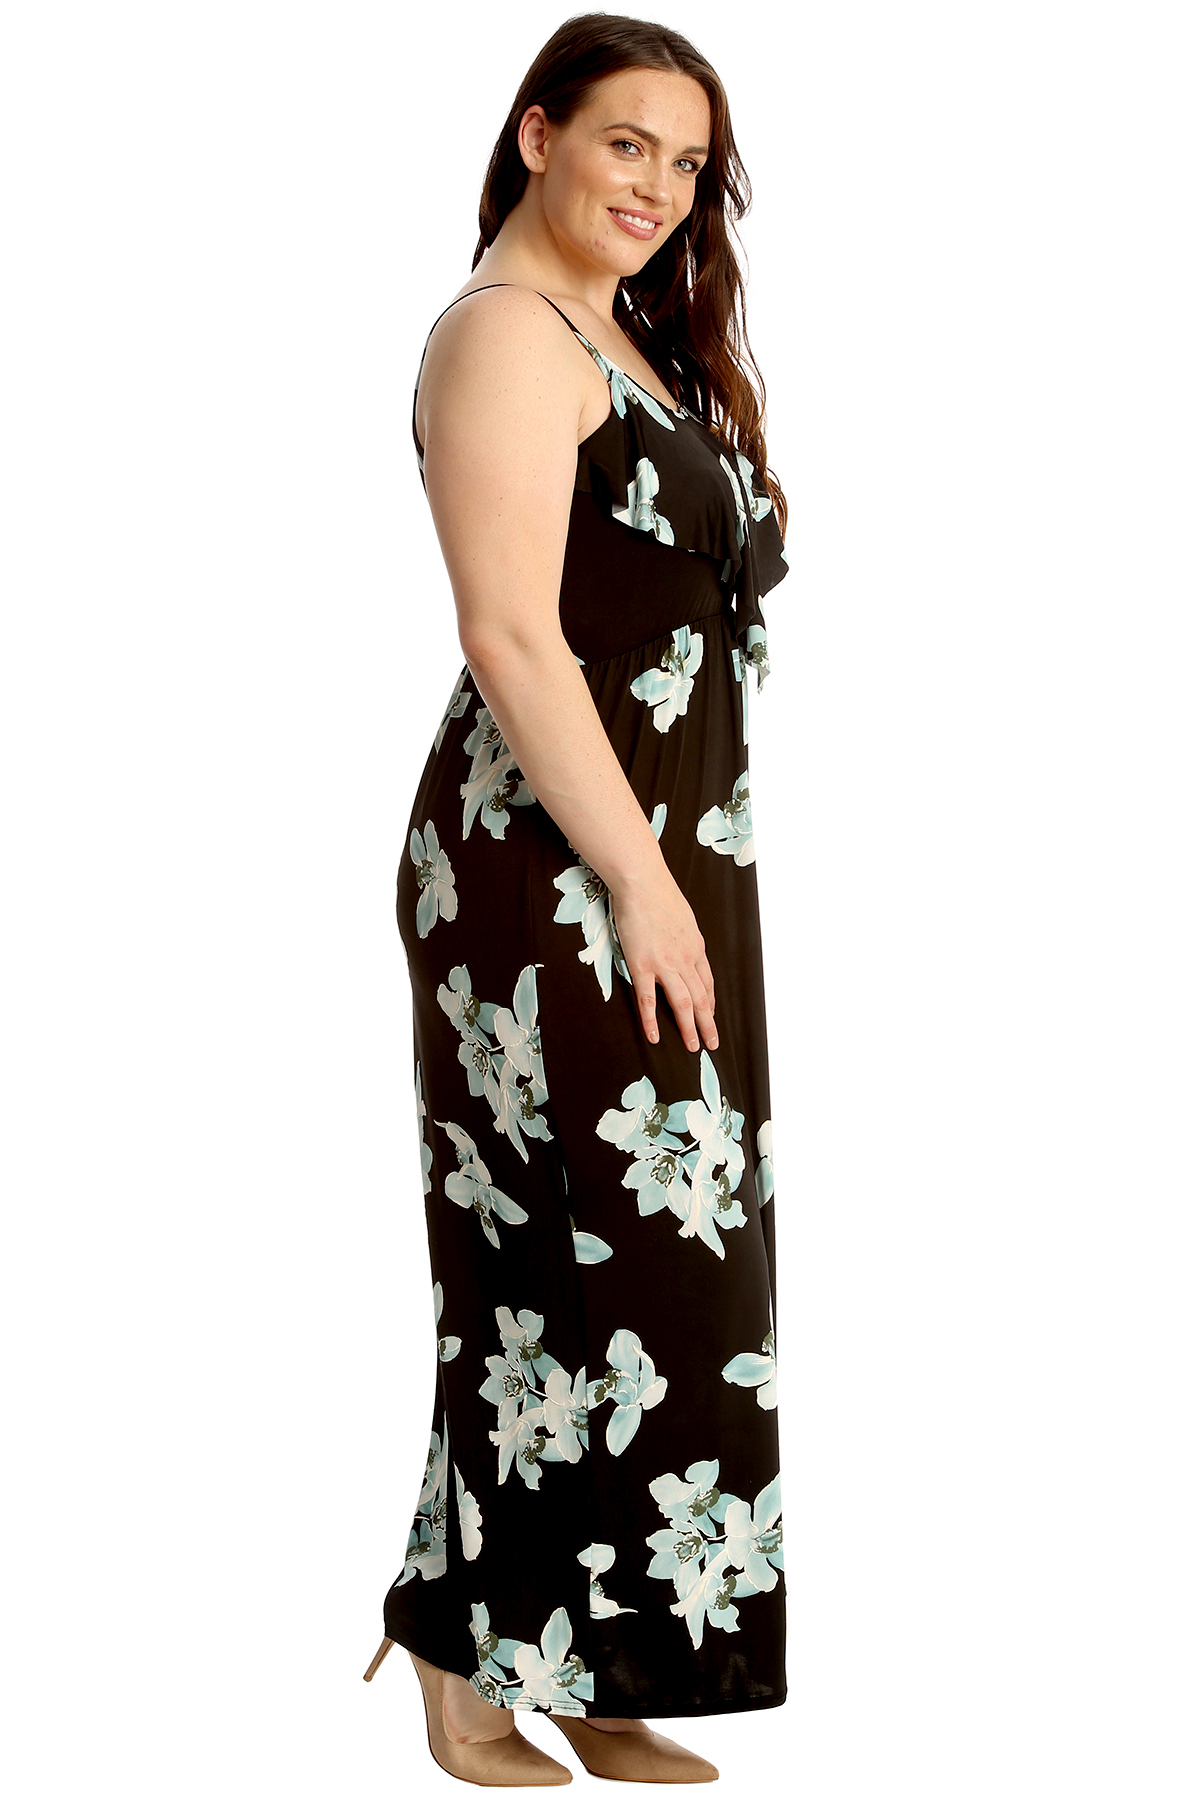 New Womens Plus Size Maxi Dress Ladies Lily Floral Print Frill Top Sleeveless | eBay